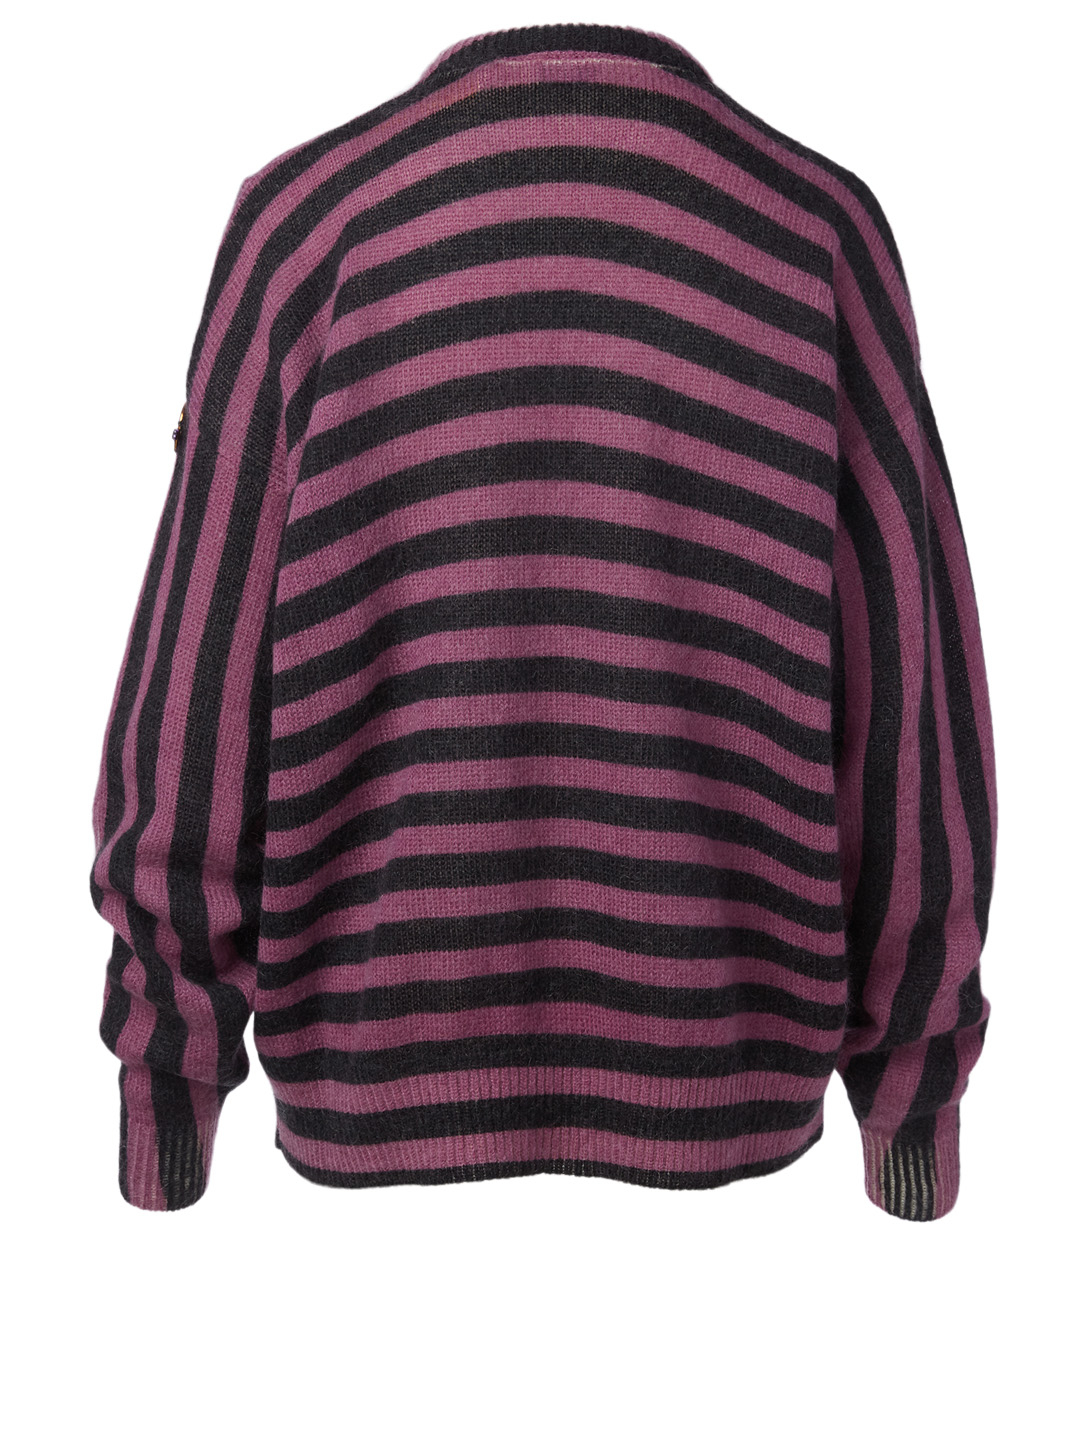 MONCLER GENIUS 8 Moncler Palm Angels Striped Mohair Sweater Men's Multi